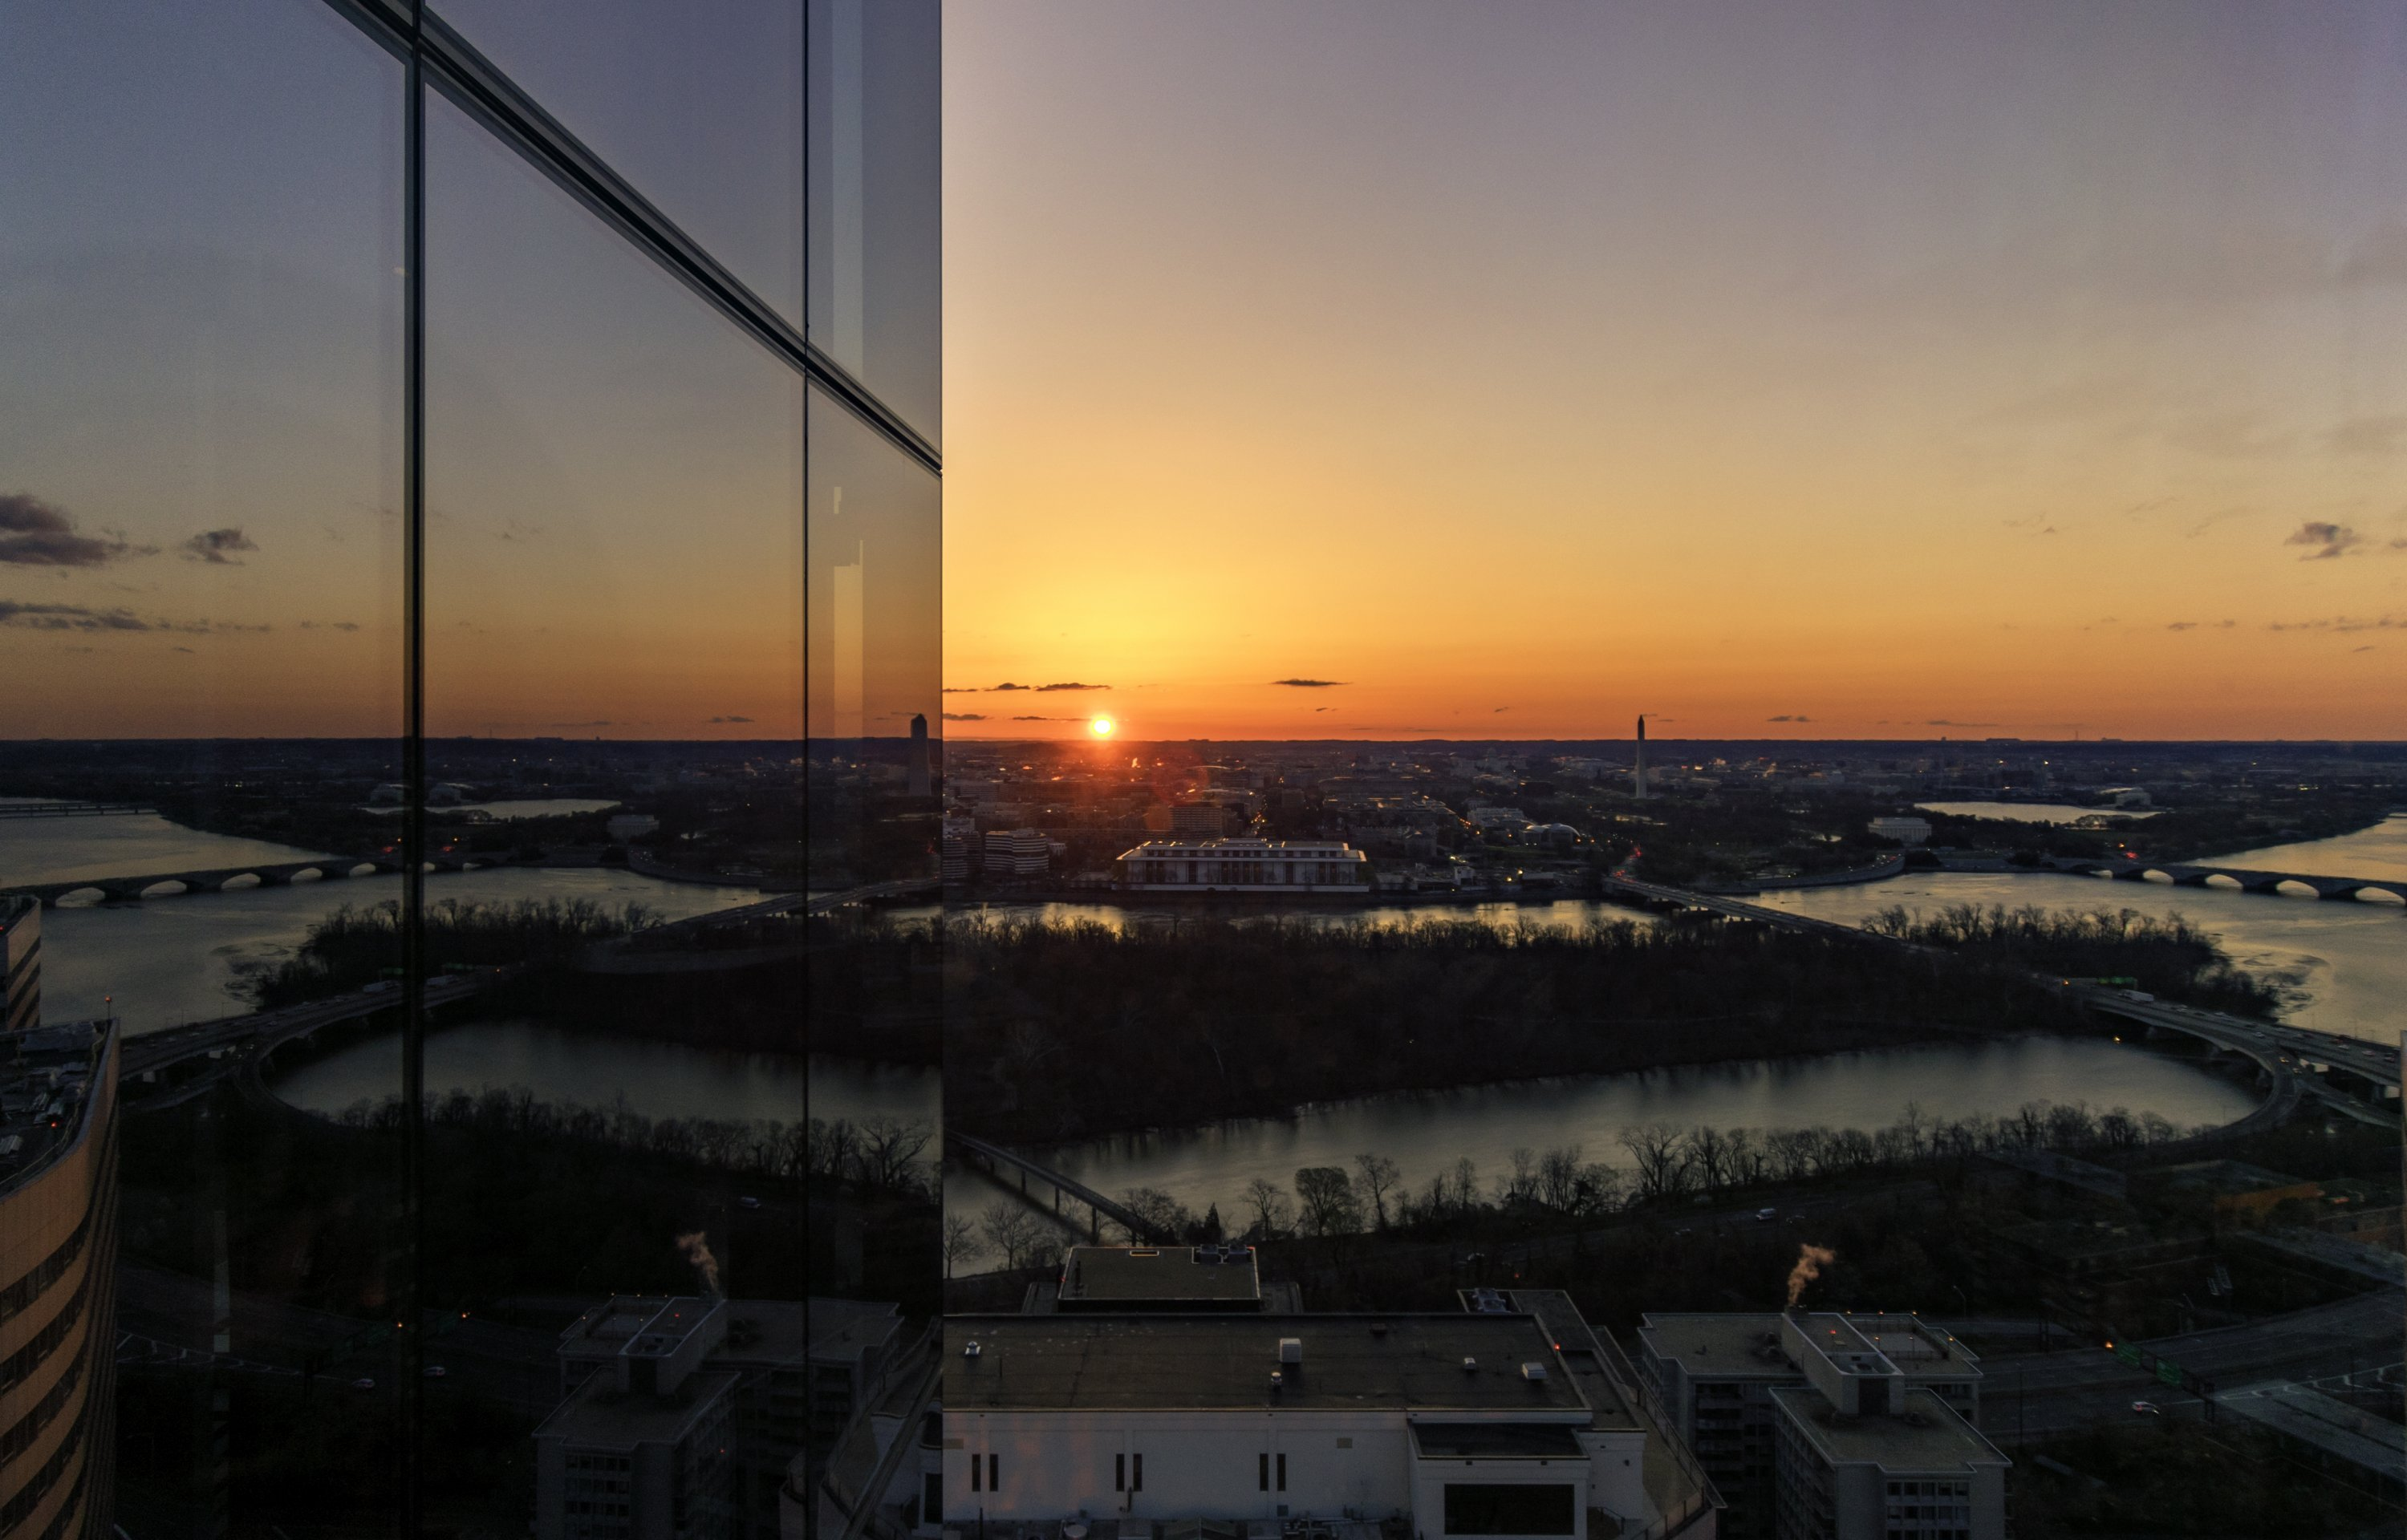 A New Attraction in Arlington Offers 360-Degree Views of Washington images 1